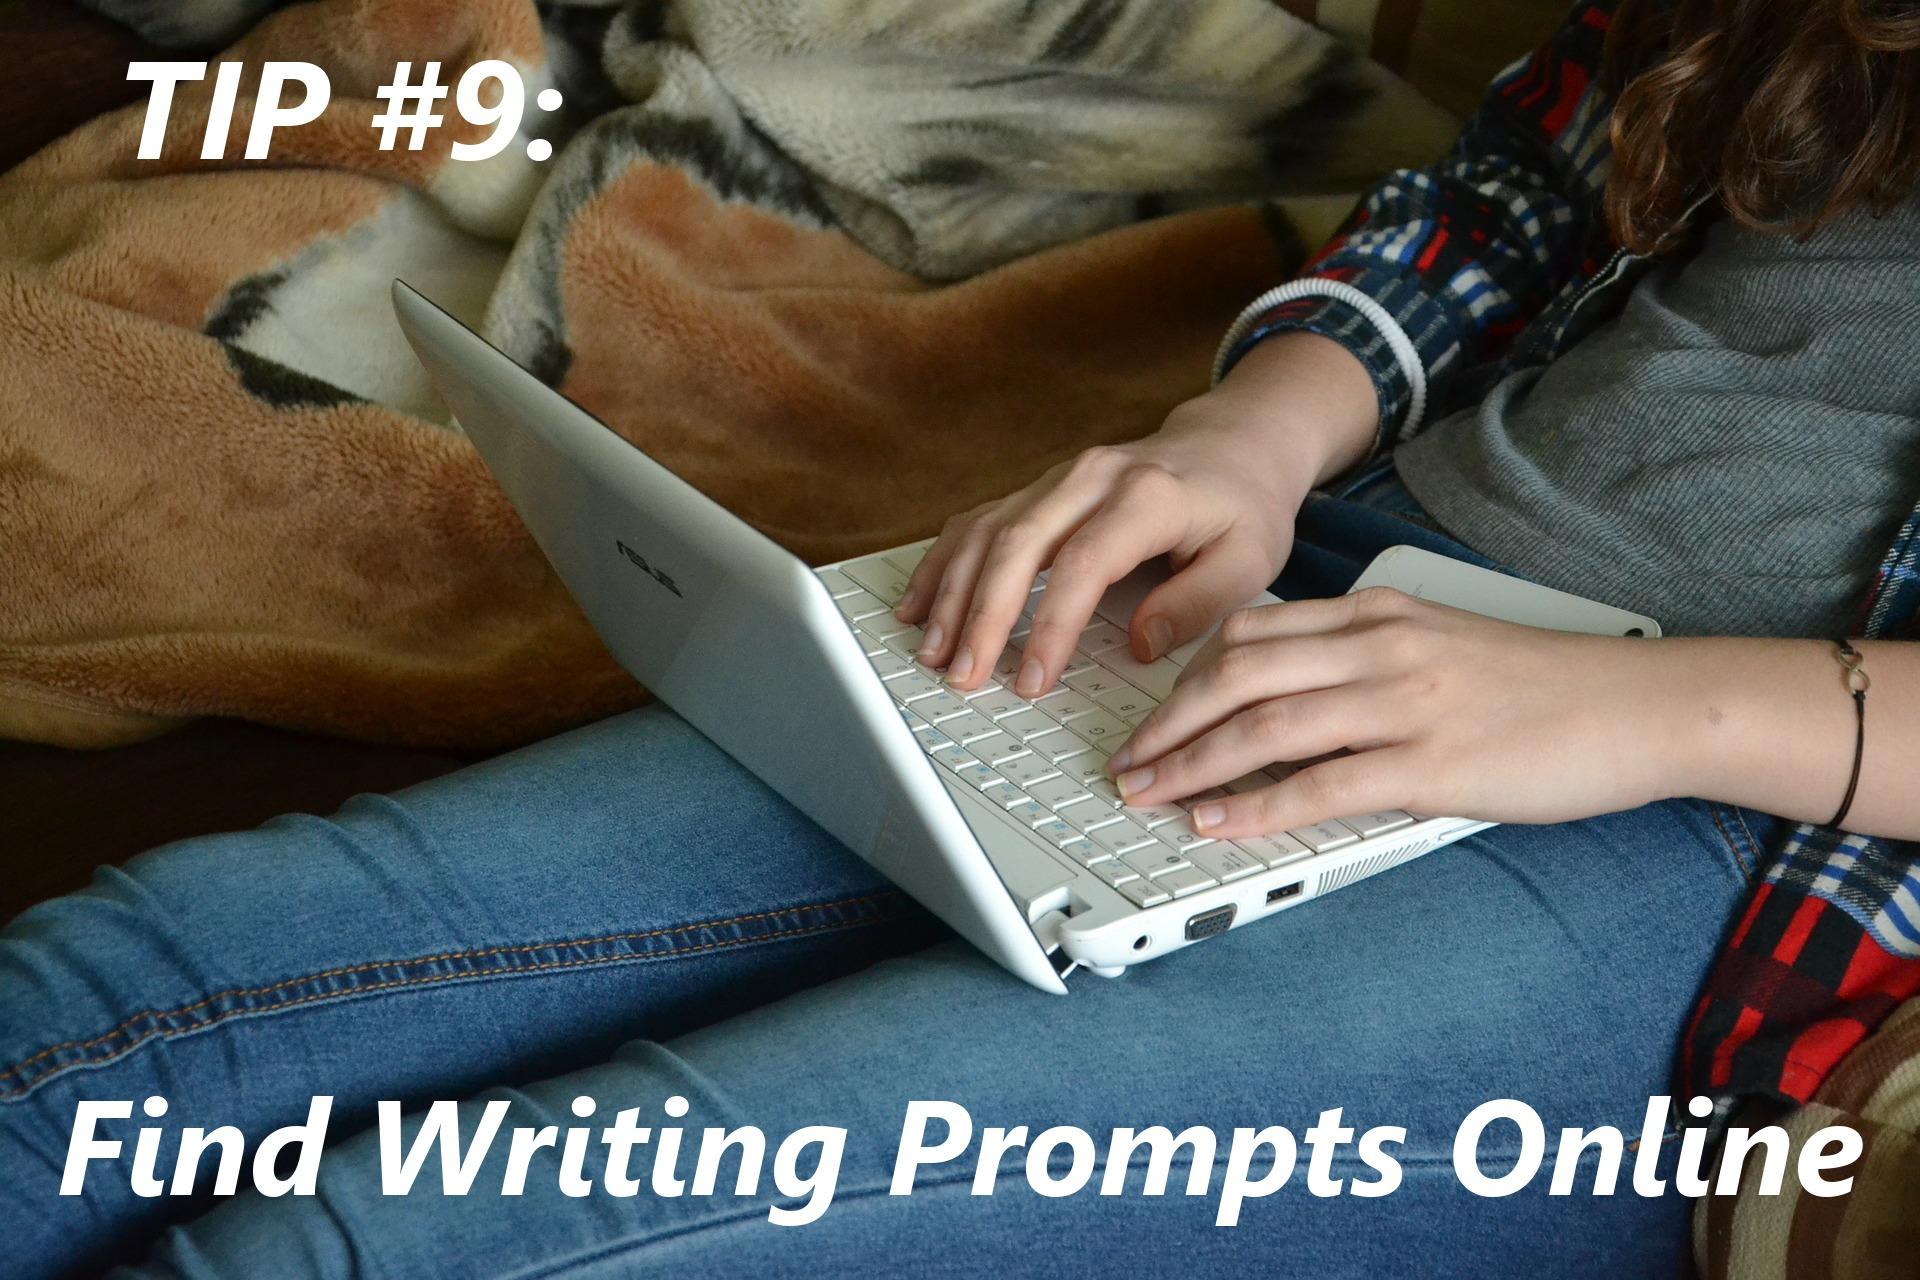 If you're really stuck with writer's block, find writing prompts online to get your creative juices flowing